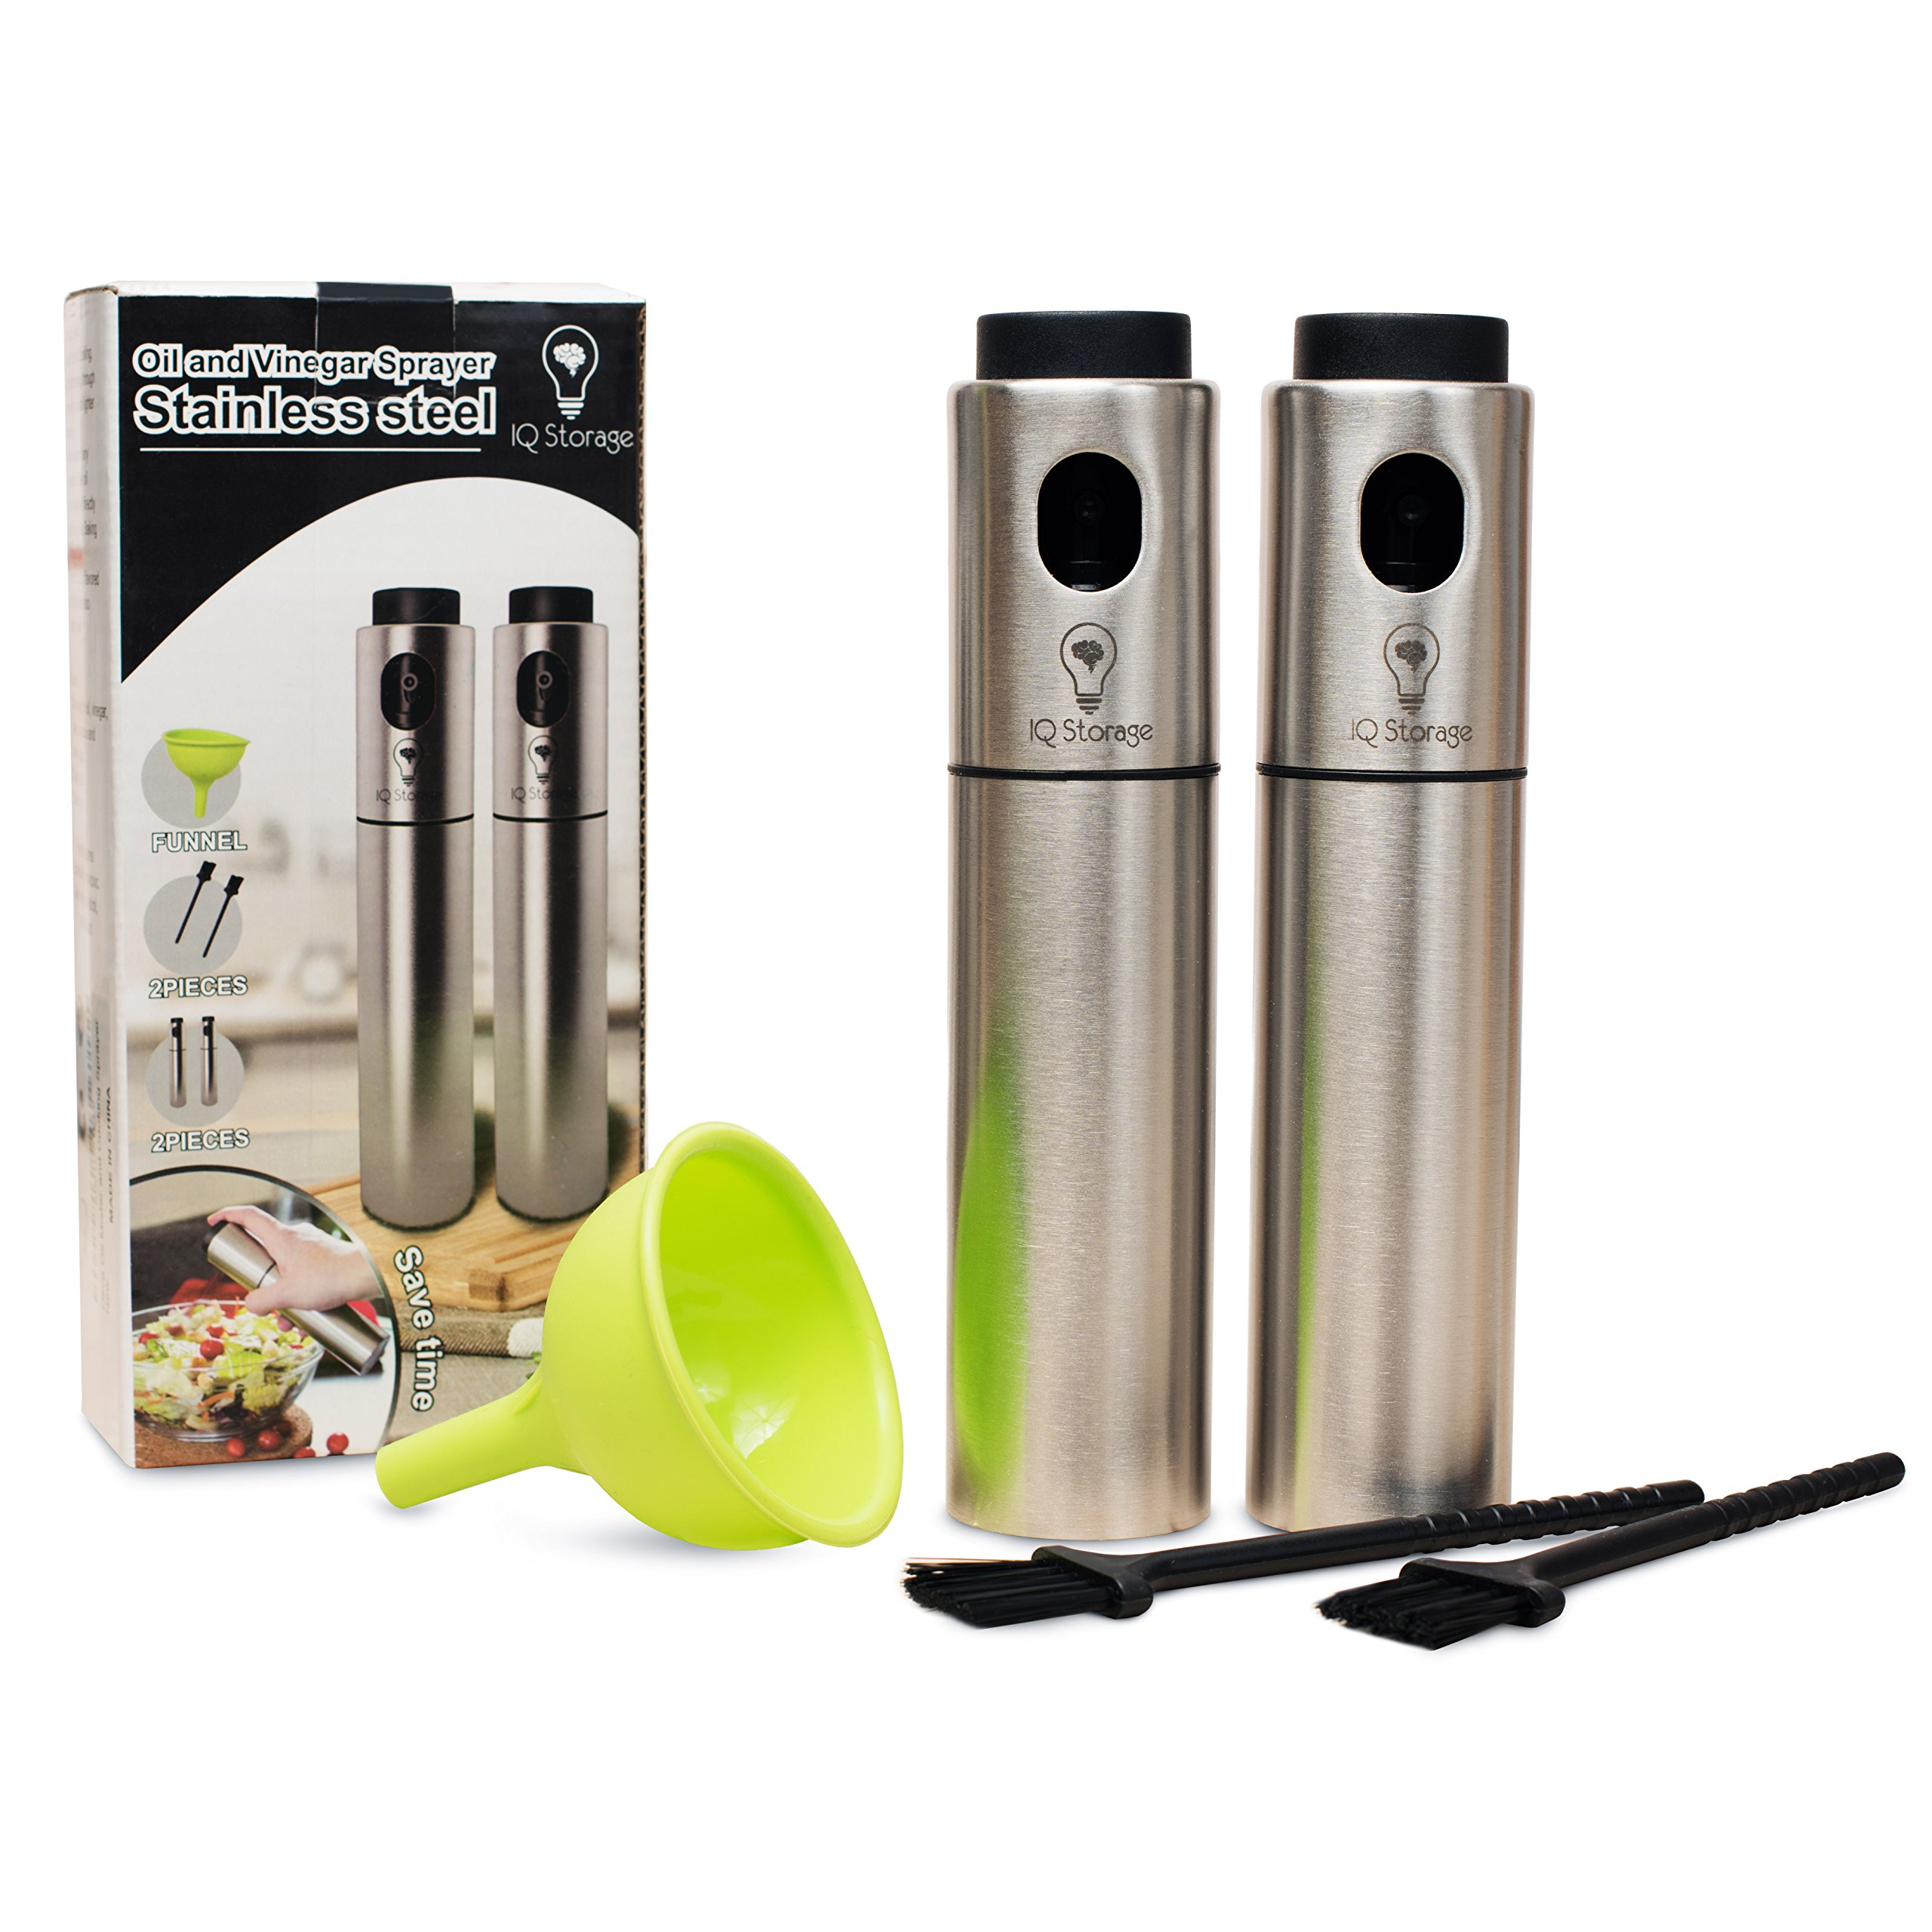 Oil And Vinegar Sprayer For Cooking By IQ Storage-Includes 2 Stainless Steel Refillable Mister Spray Dispensers, 2 Baking Brushes,1 Silicon Funnel-Ideal For Making Salad, BBQ, Grilling And Roasting